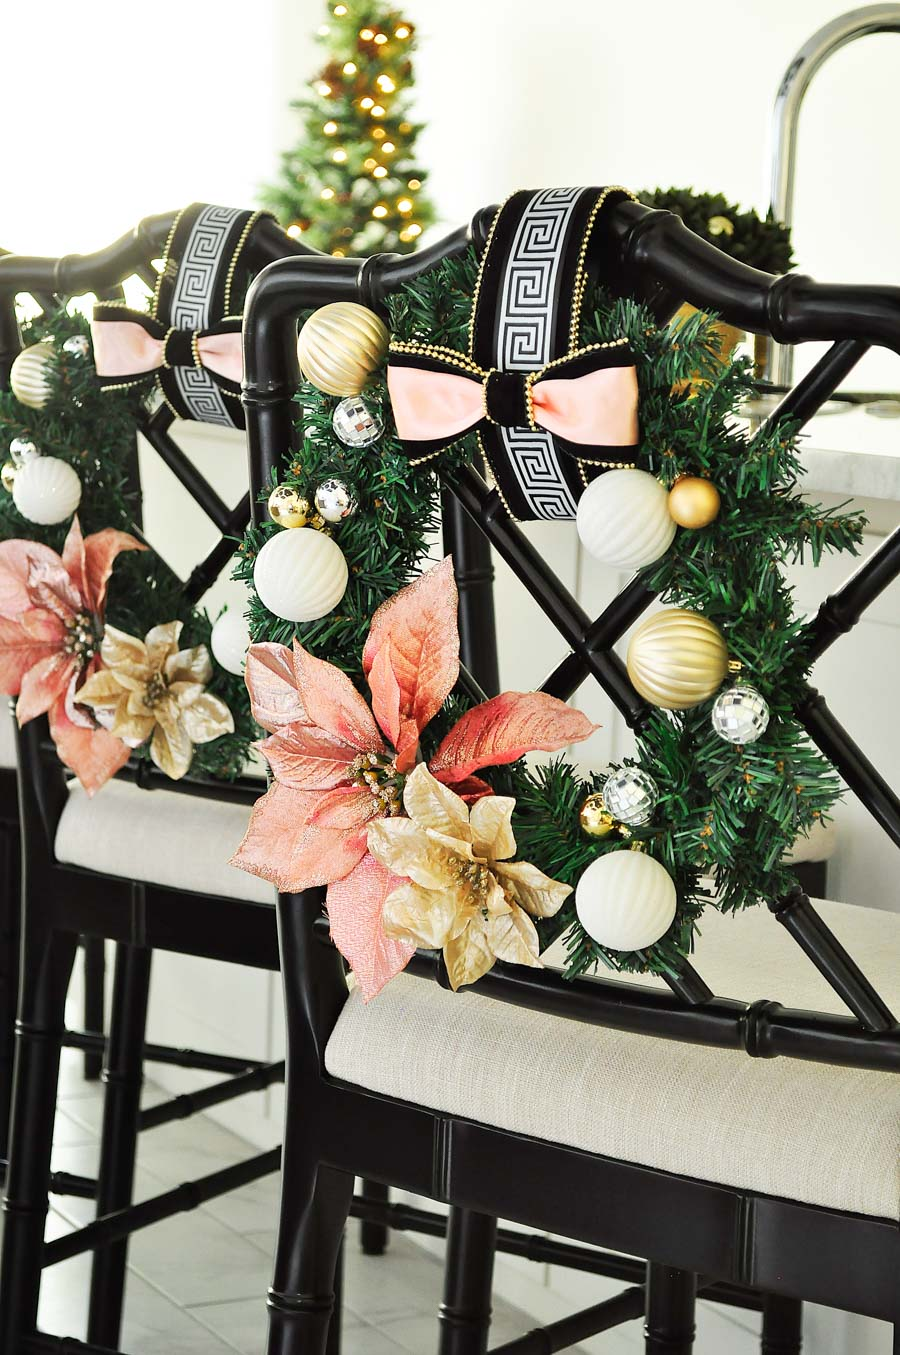 Blush and gold chair wreath to decorate the back of the dayna stool from Ballard Designs